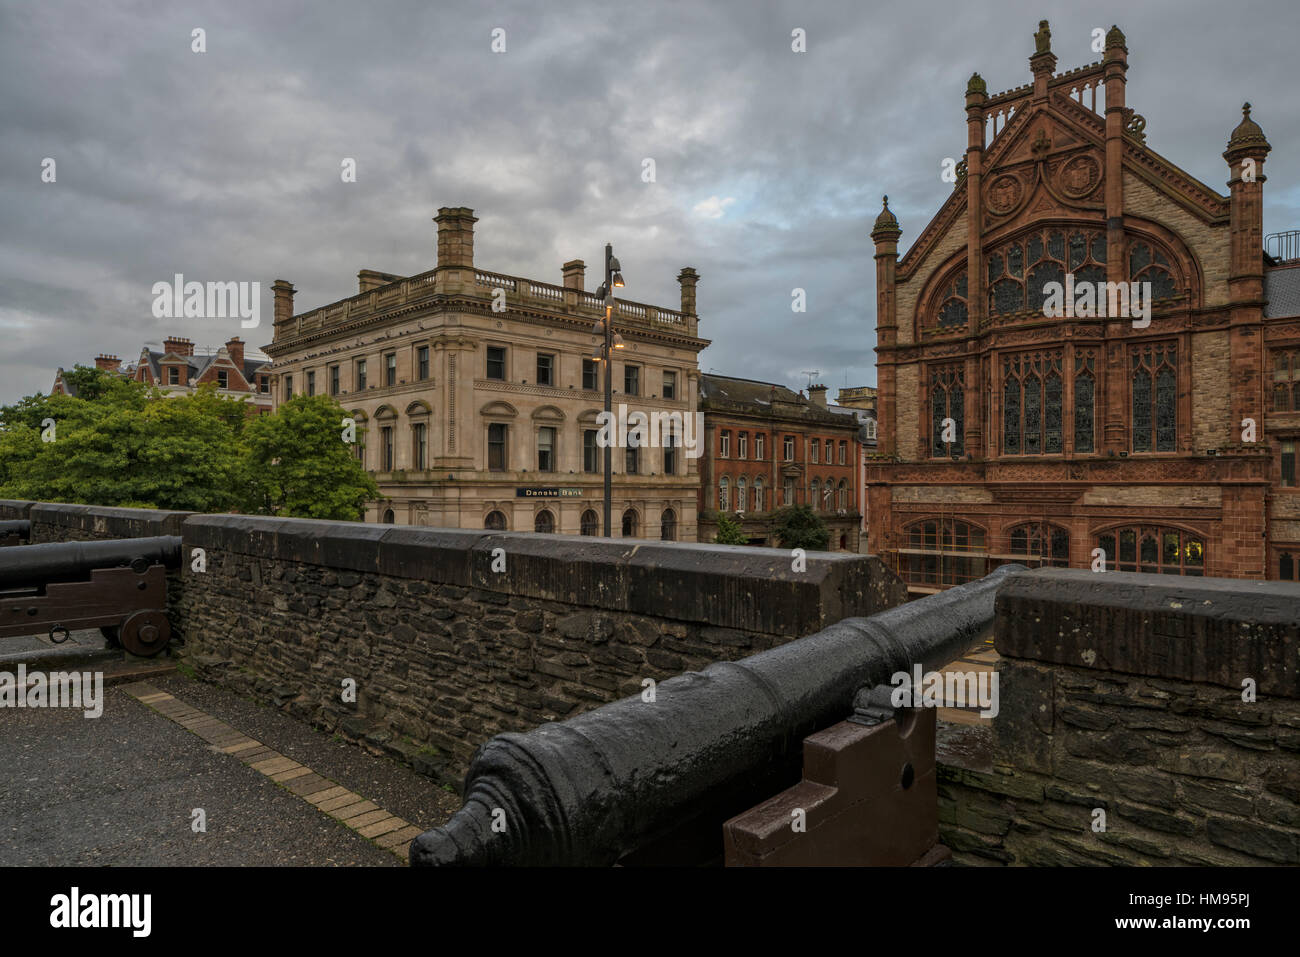 Derry (Londonderry), County Derry (Londonderry), Northern